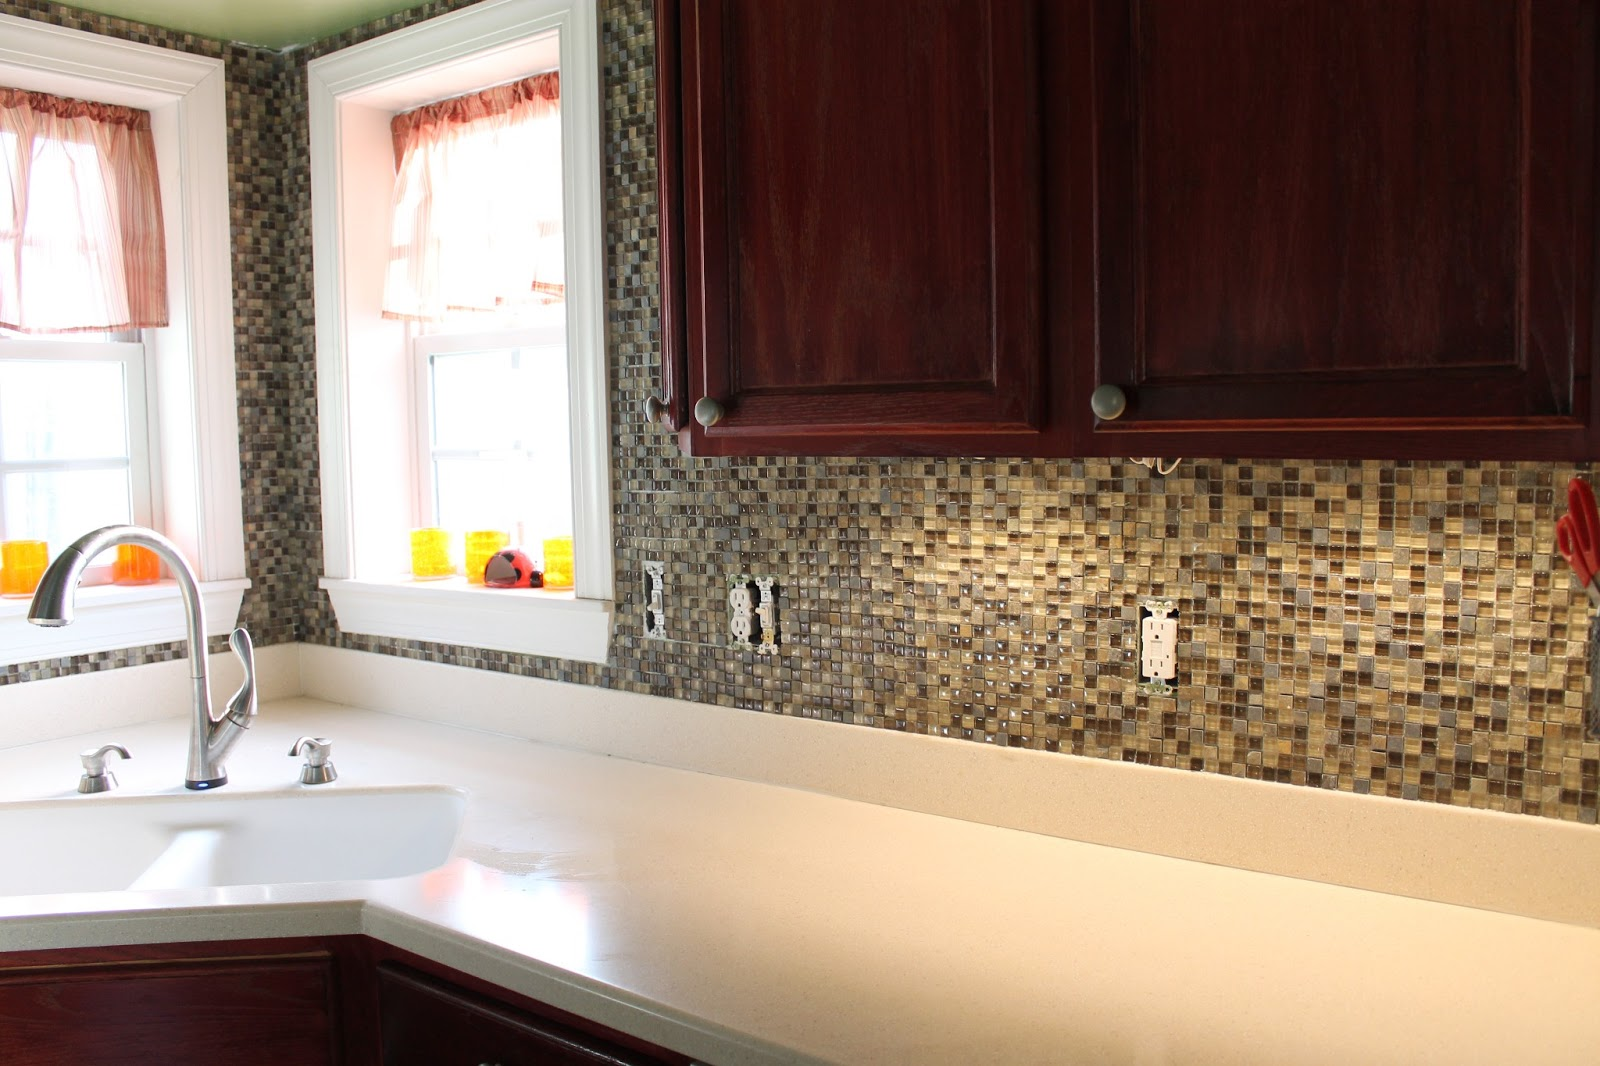 How To Put Up A Backsplash In Kitchen